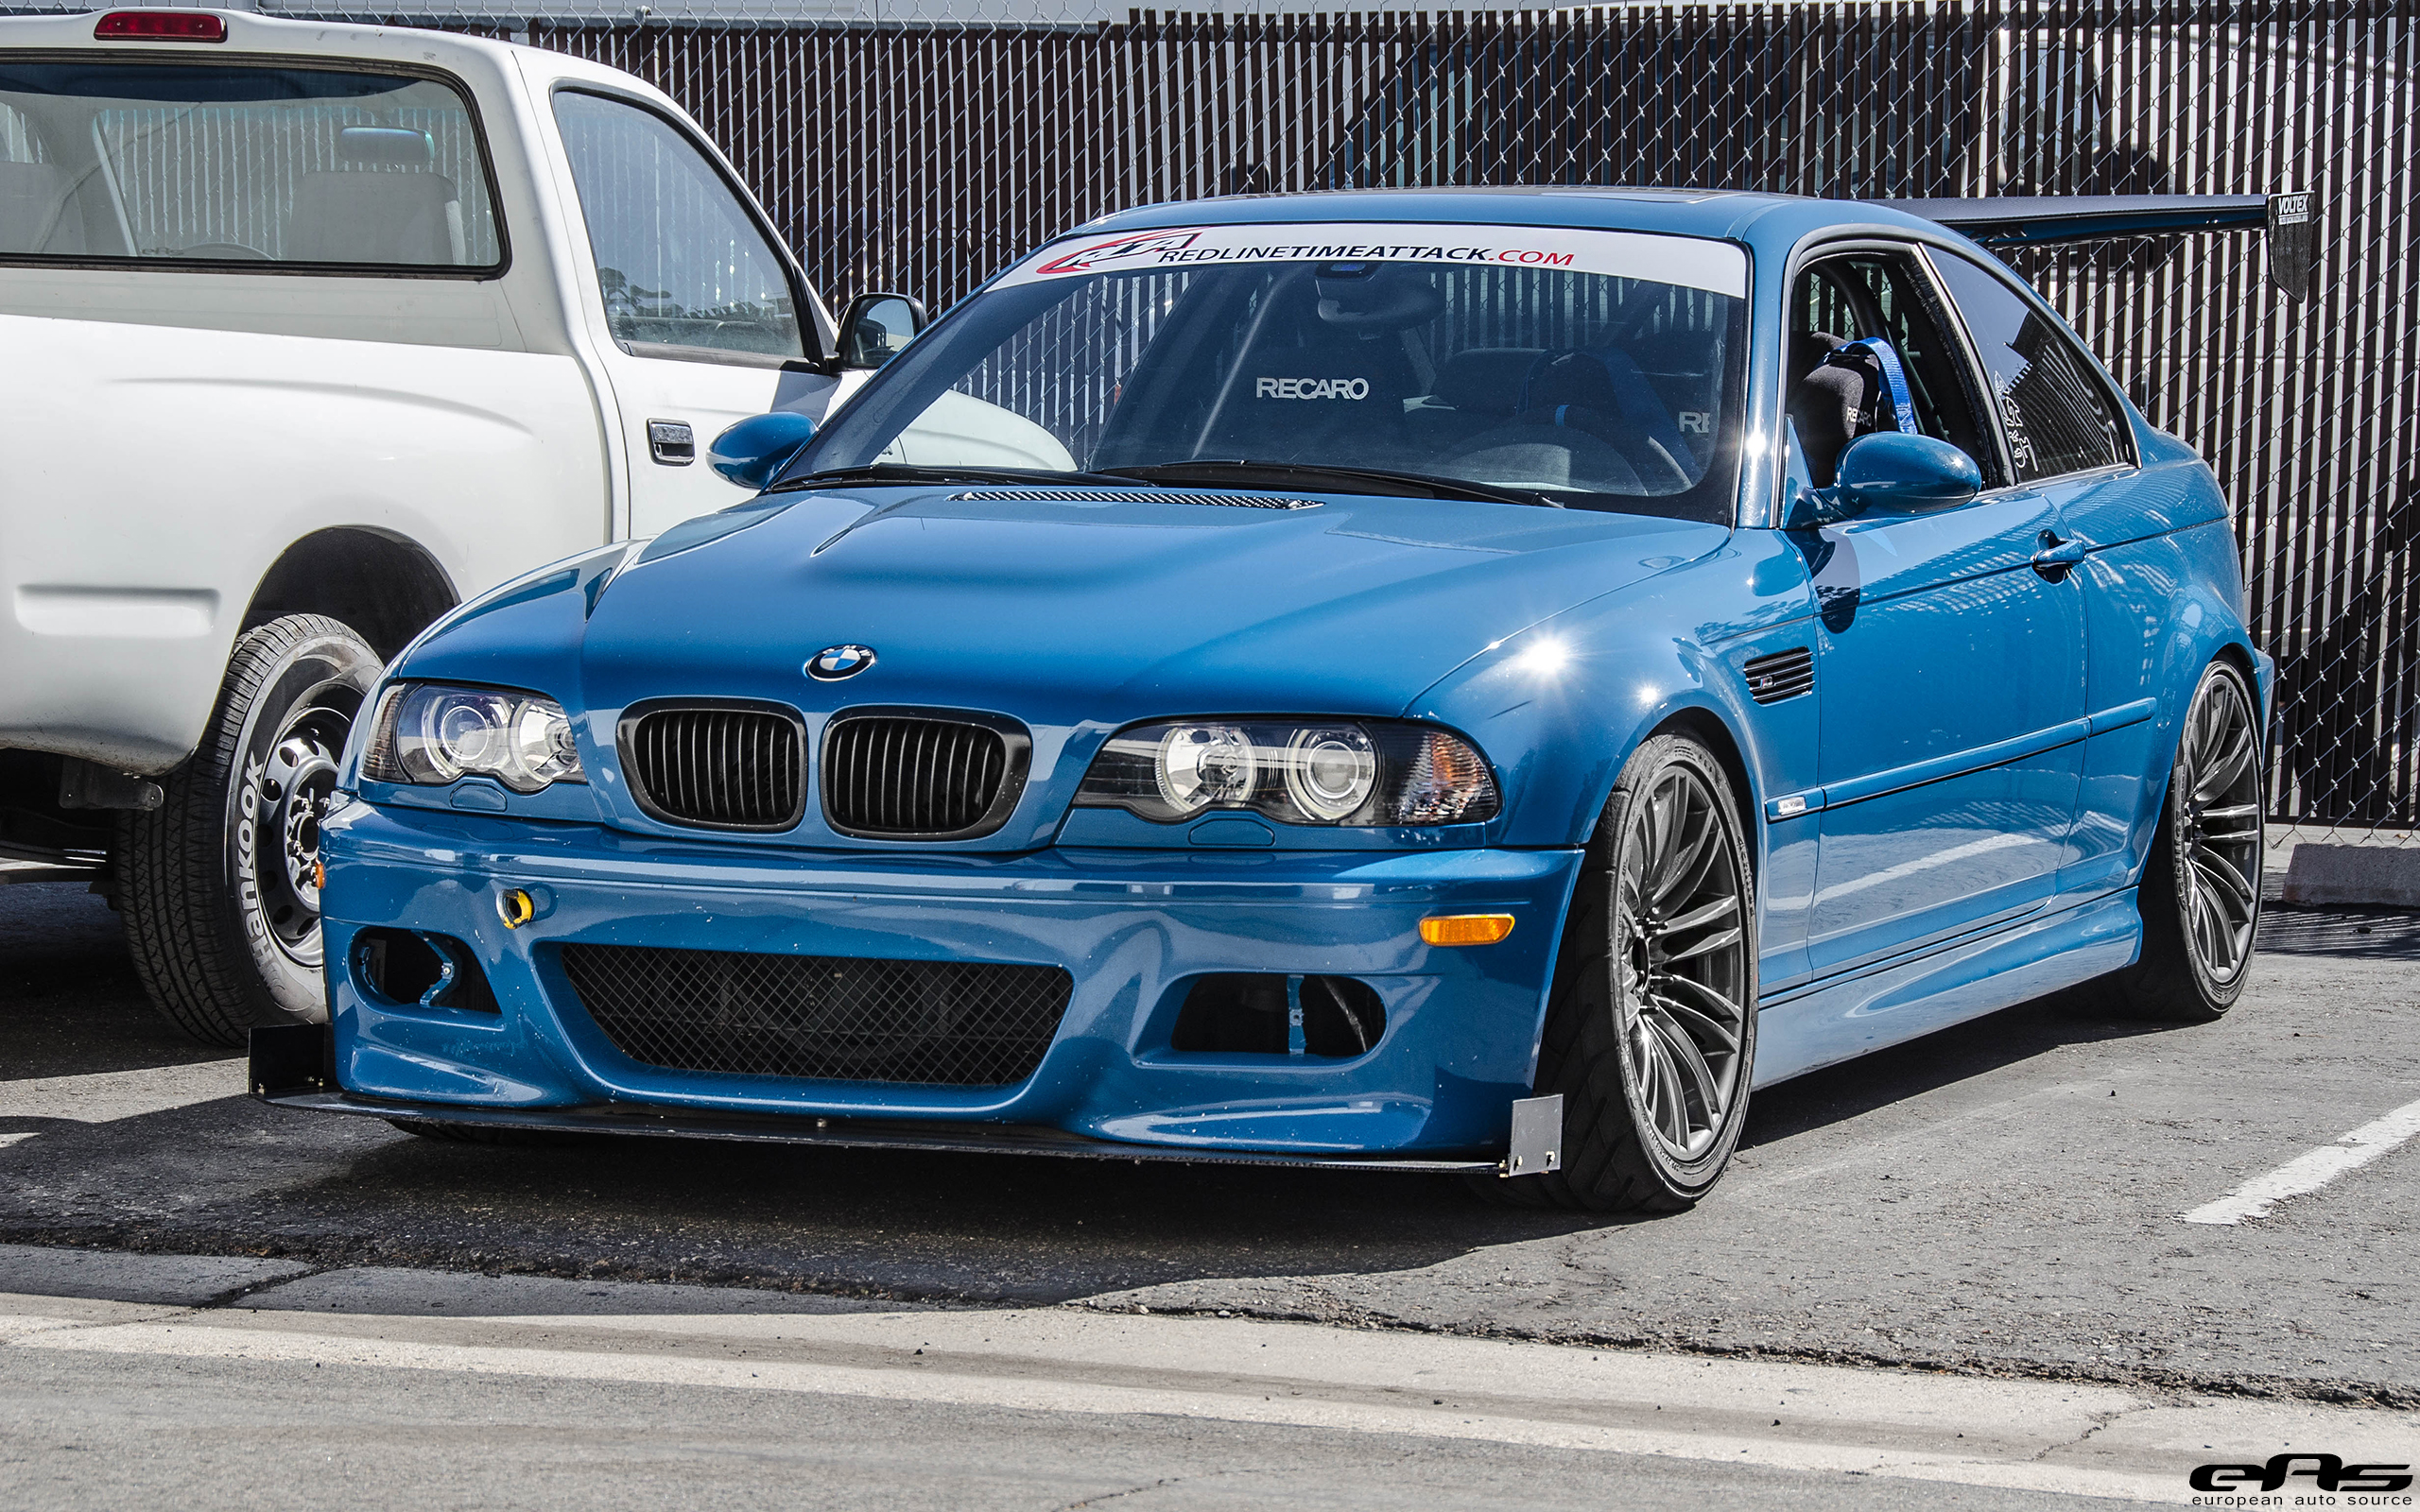 Time Attack Laguna Seca Blue E46 M3 Bmw Performance Parts Services